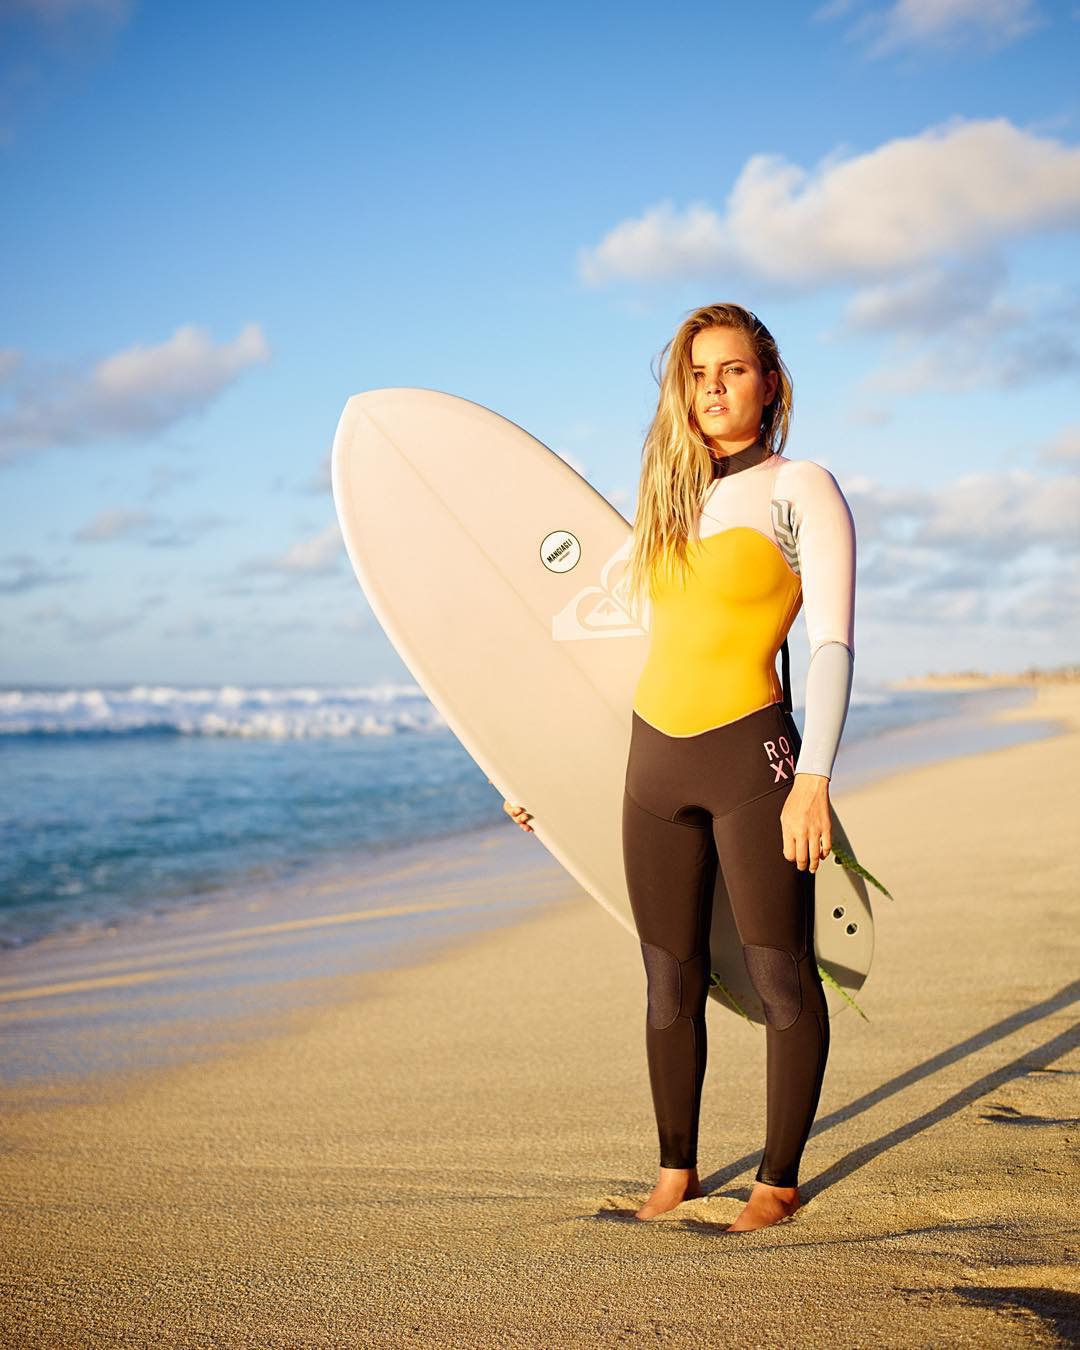 As good as gold #ROXYsurf  roxy.com/surf